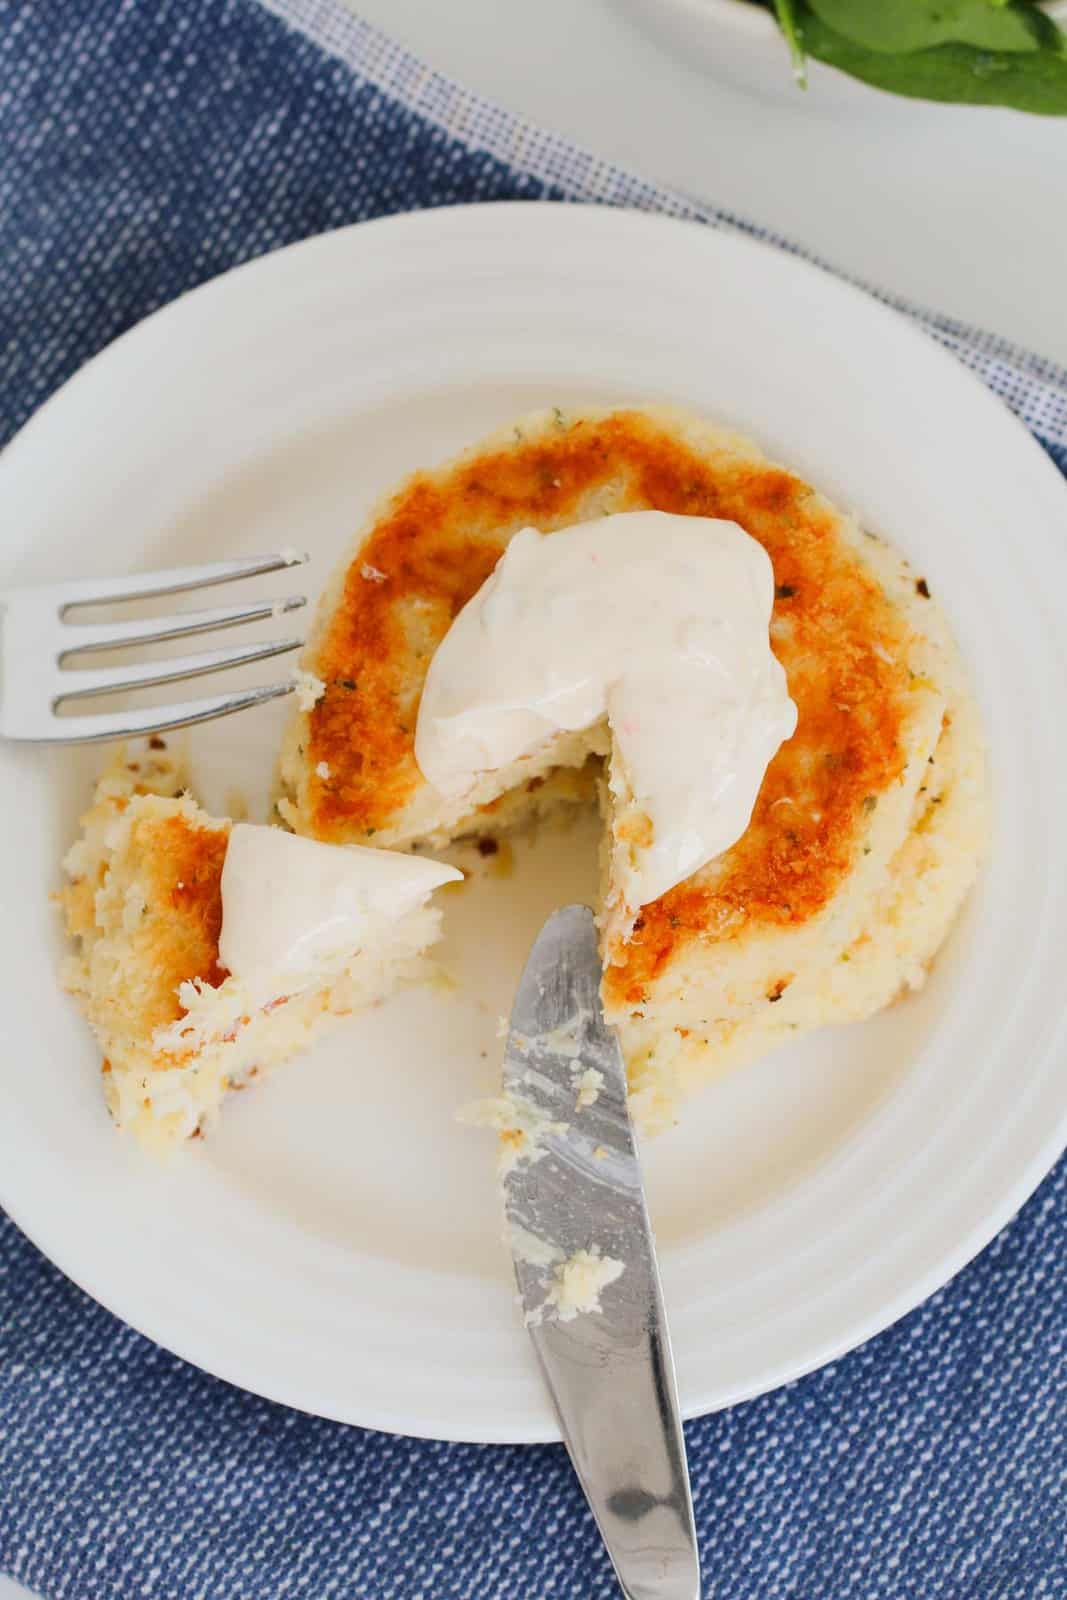 A knife and fork on a plate, with cut golden fish cakes and a dollop of aioli on top.